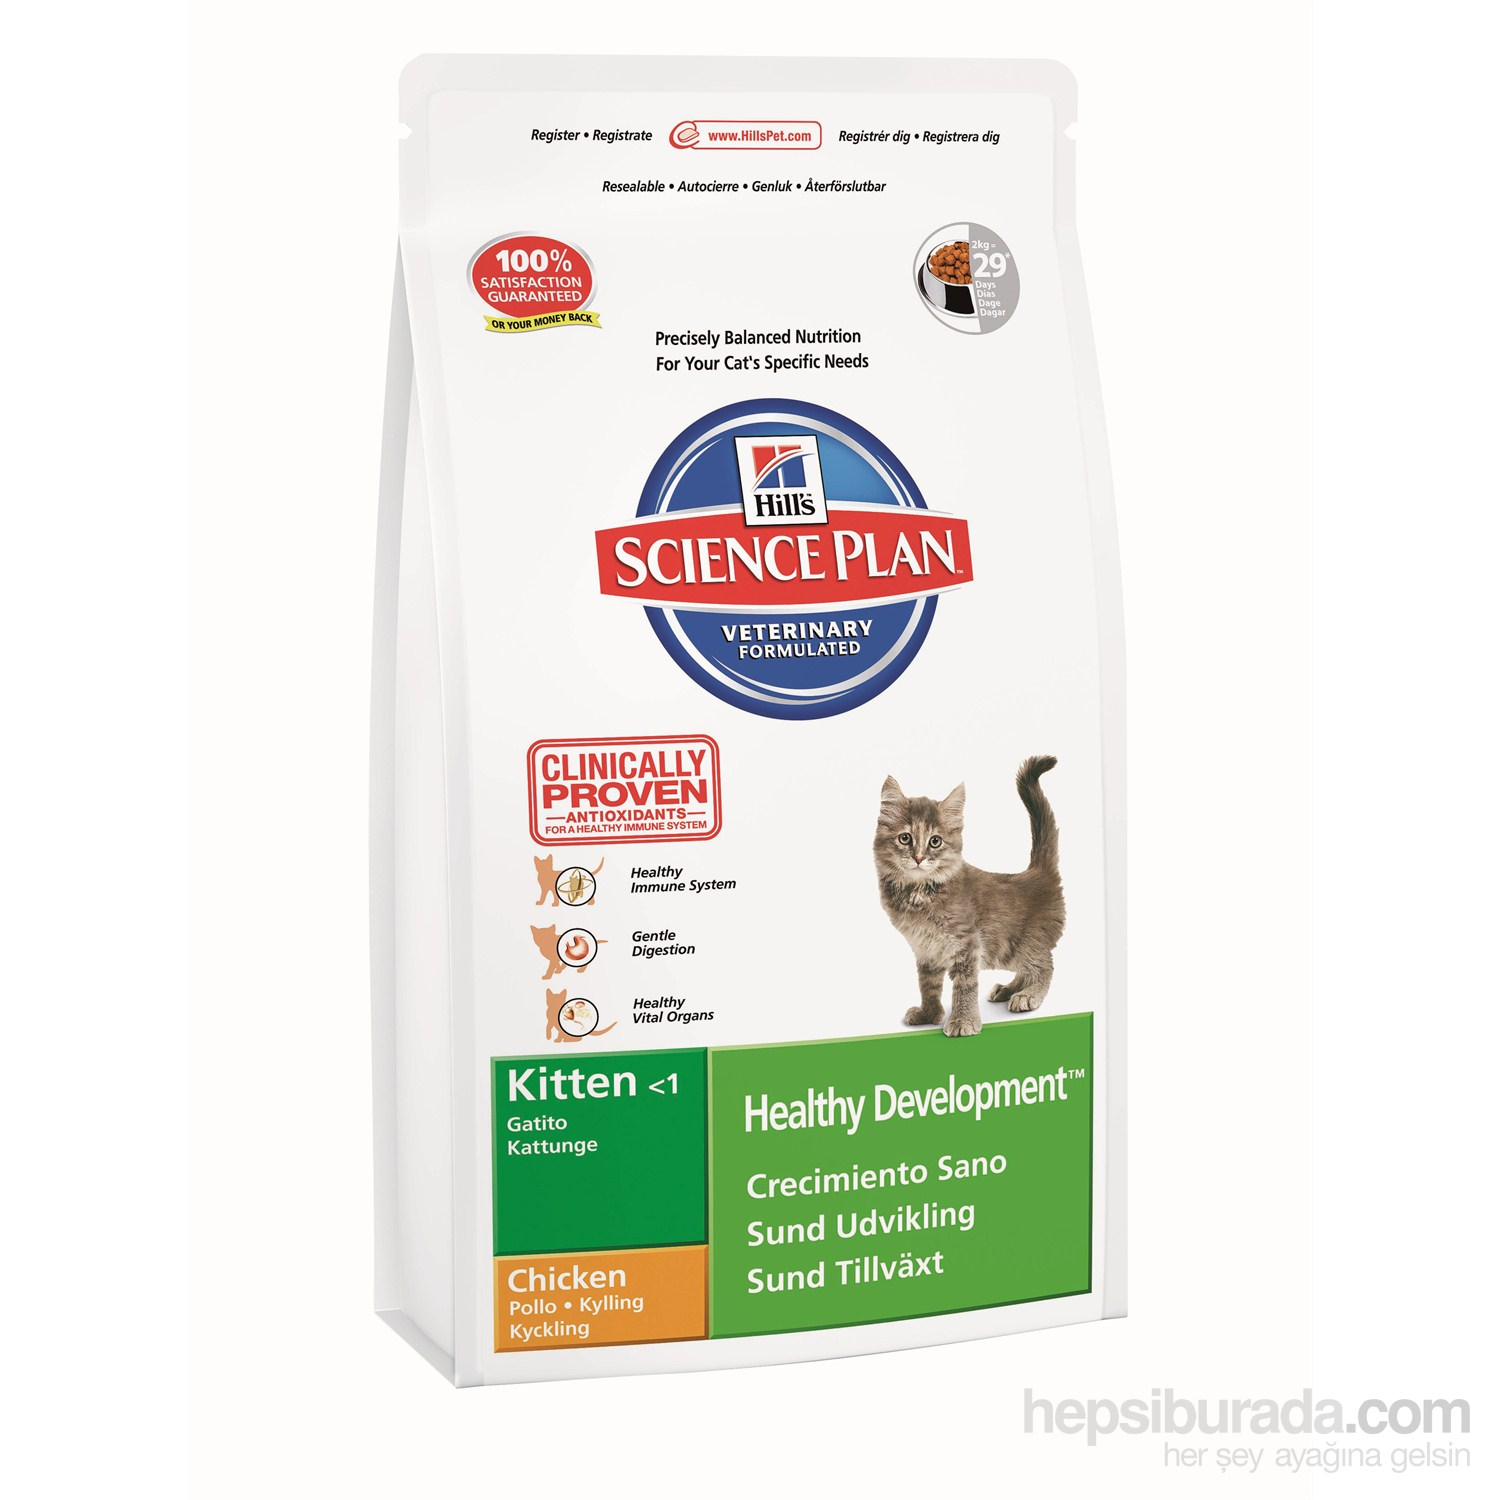 Hill's Science Plan Tavuklu Yavru Kedi Maması 2 Kg (Kitten Healthy Development with Chicken)